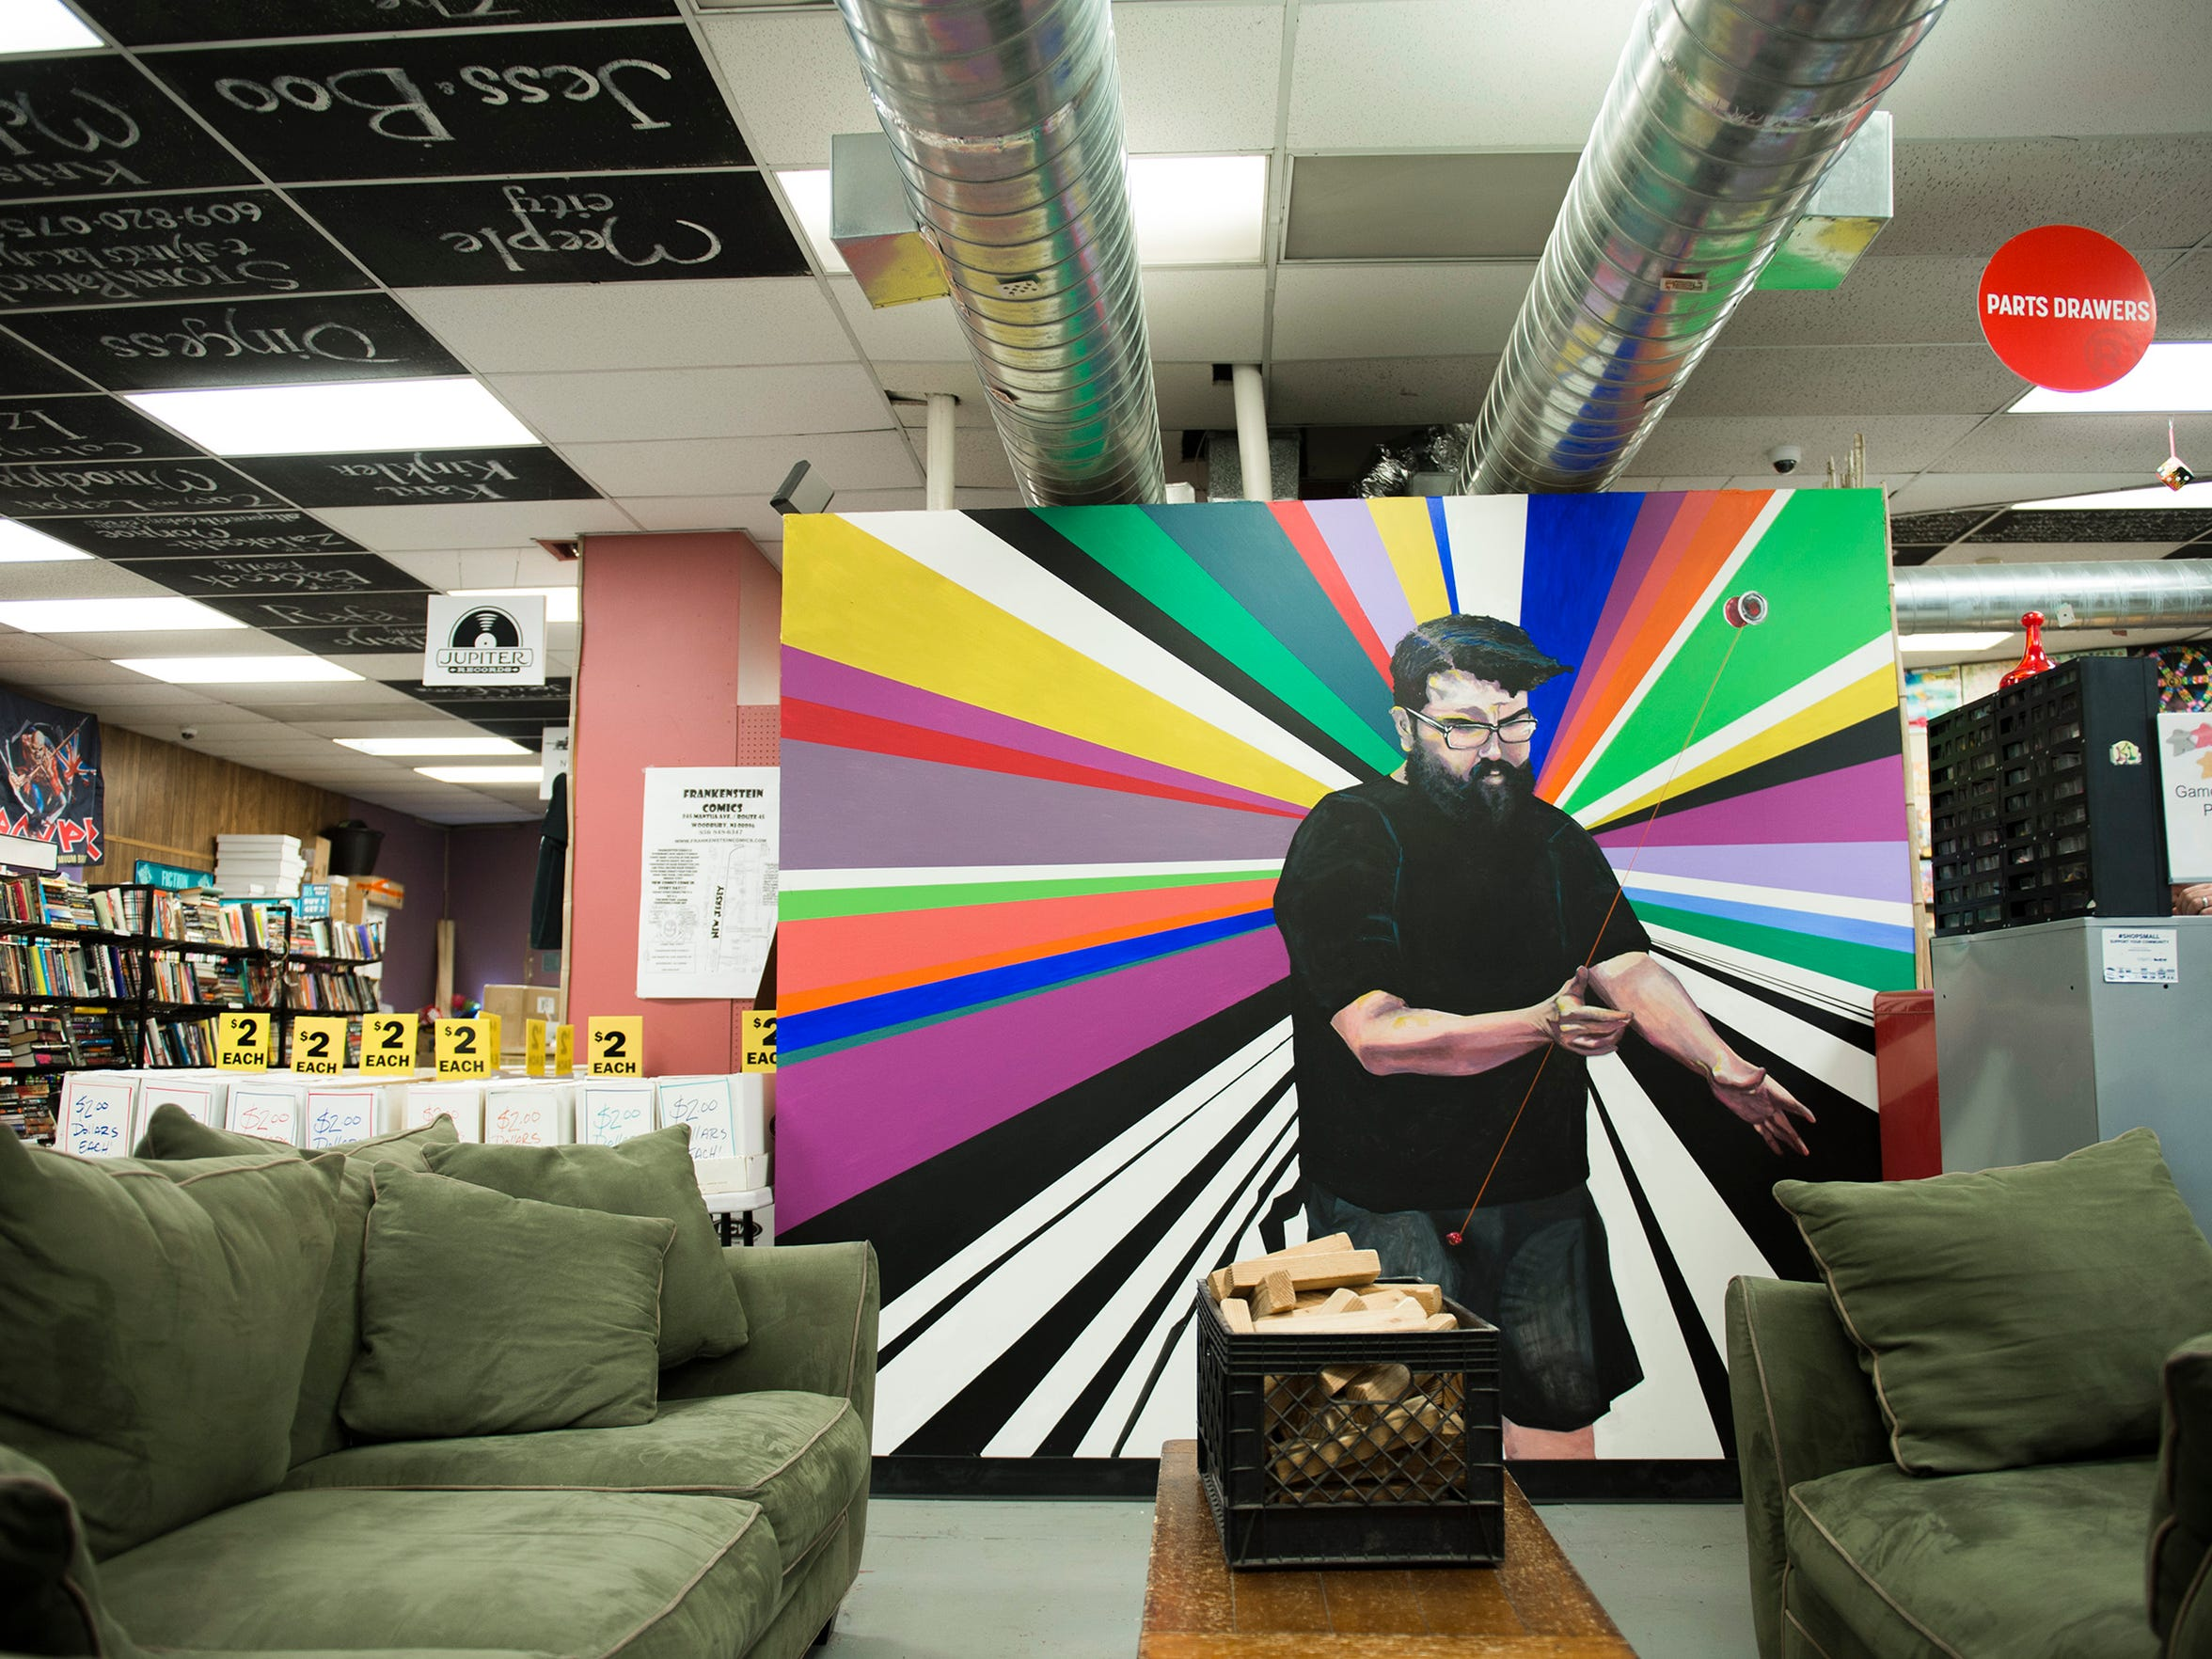 A painting of A.J. Kirk on display inside Tiki Tiki Board Games Tuesday, March 27, 2018 in Woodbury, N.J. Kirk, who passed away in 2015, started the yo-yo club in 2014.